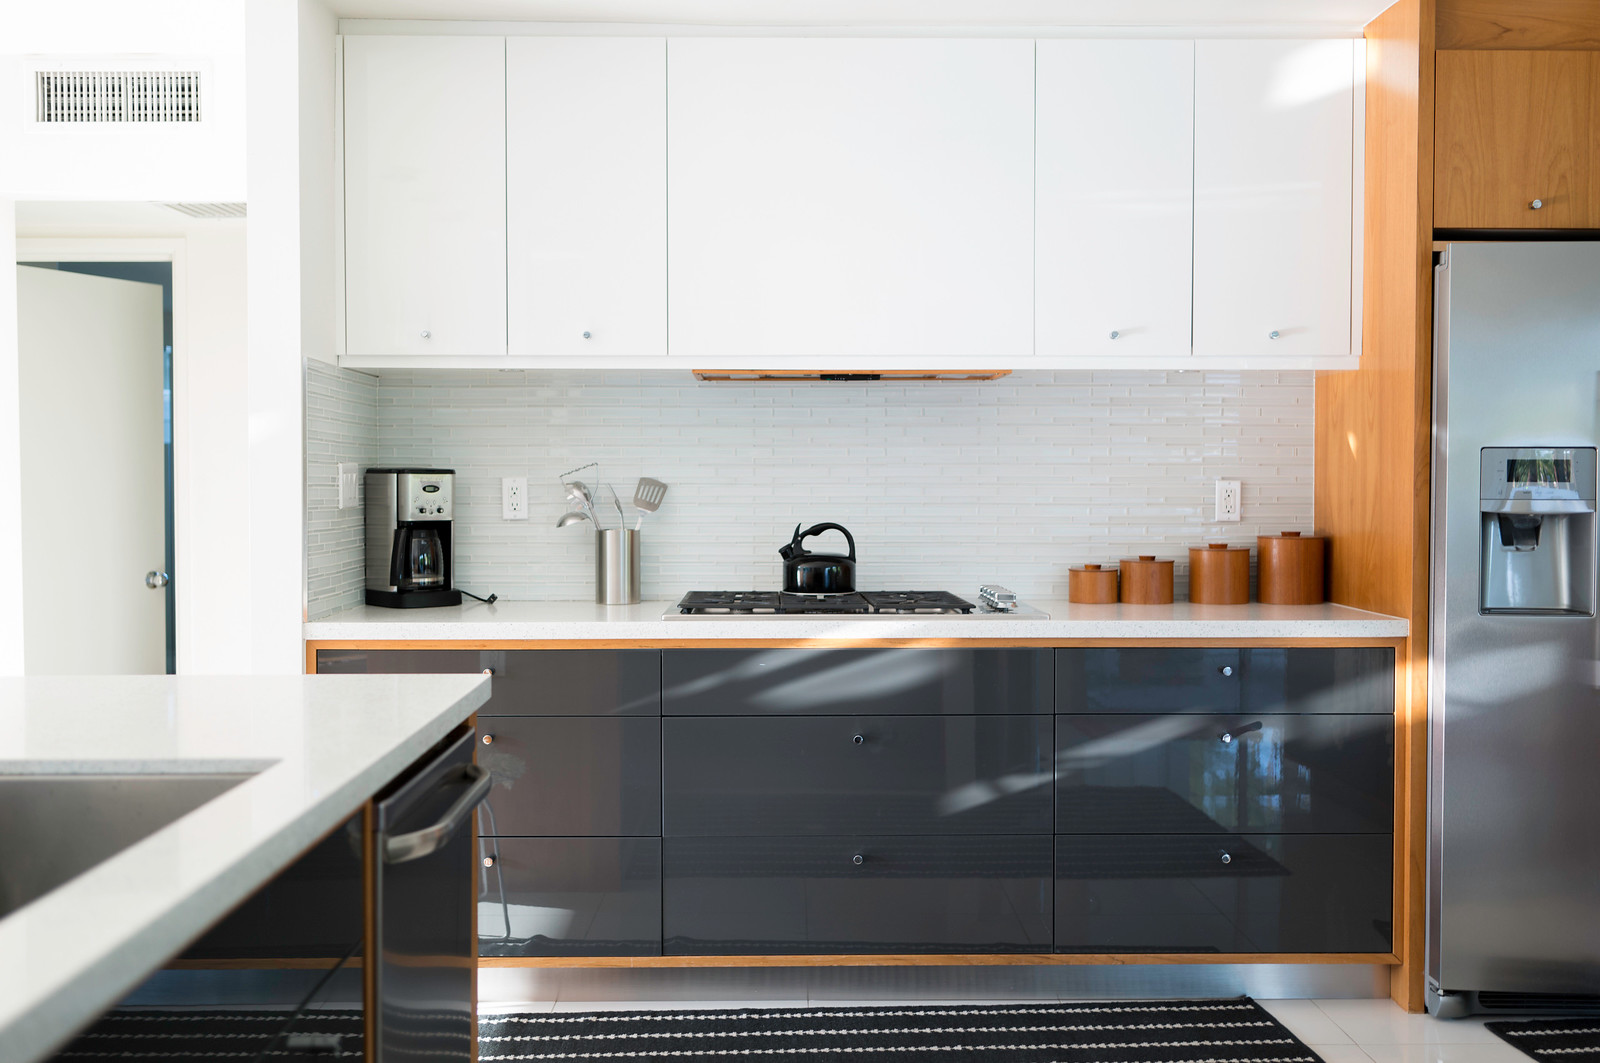 White kitchen cabinets above stove with black kitchen cabinets below